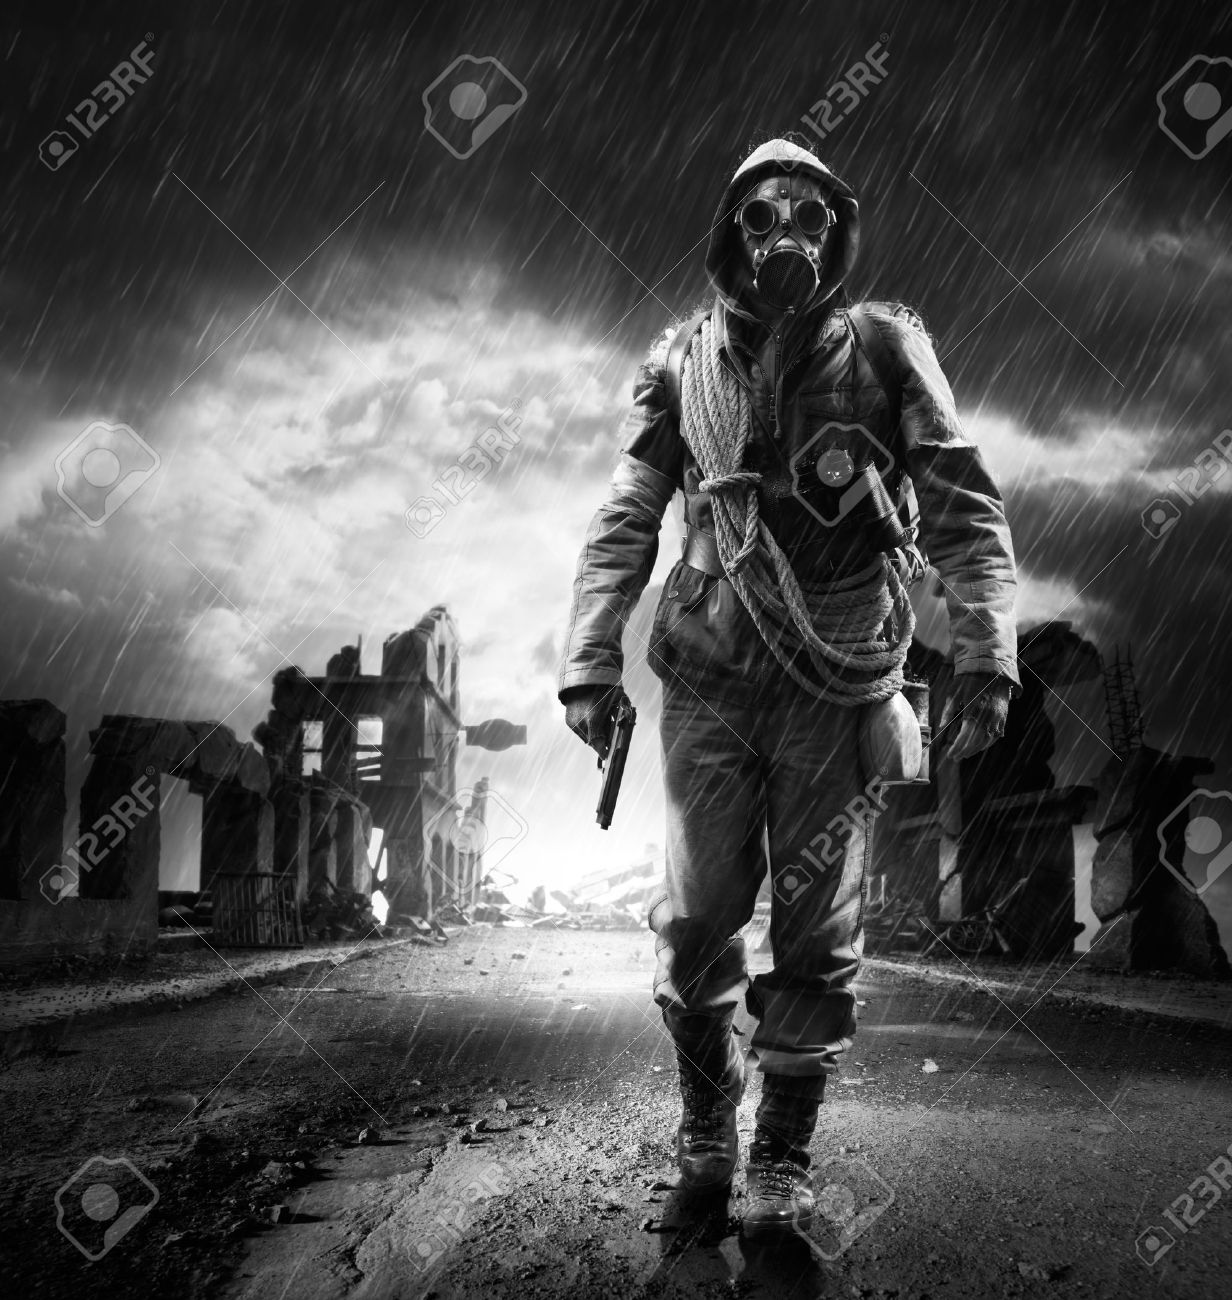 A lonely hero wearing gas mask walking through a city destroyed - 22809869